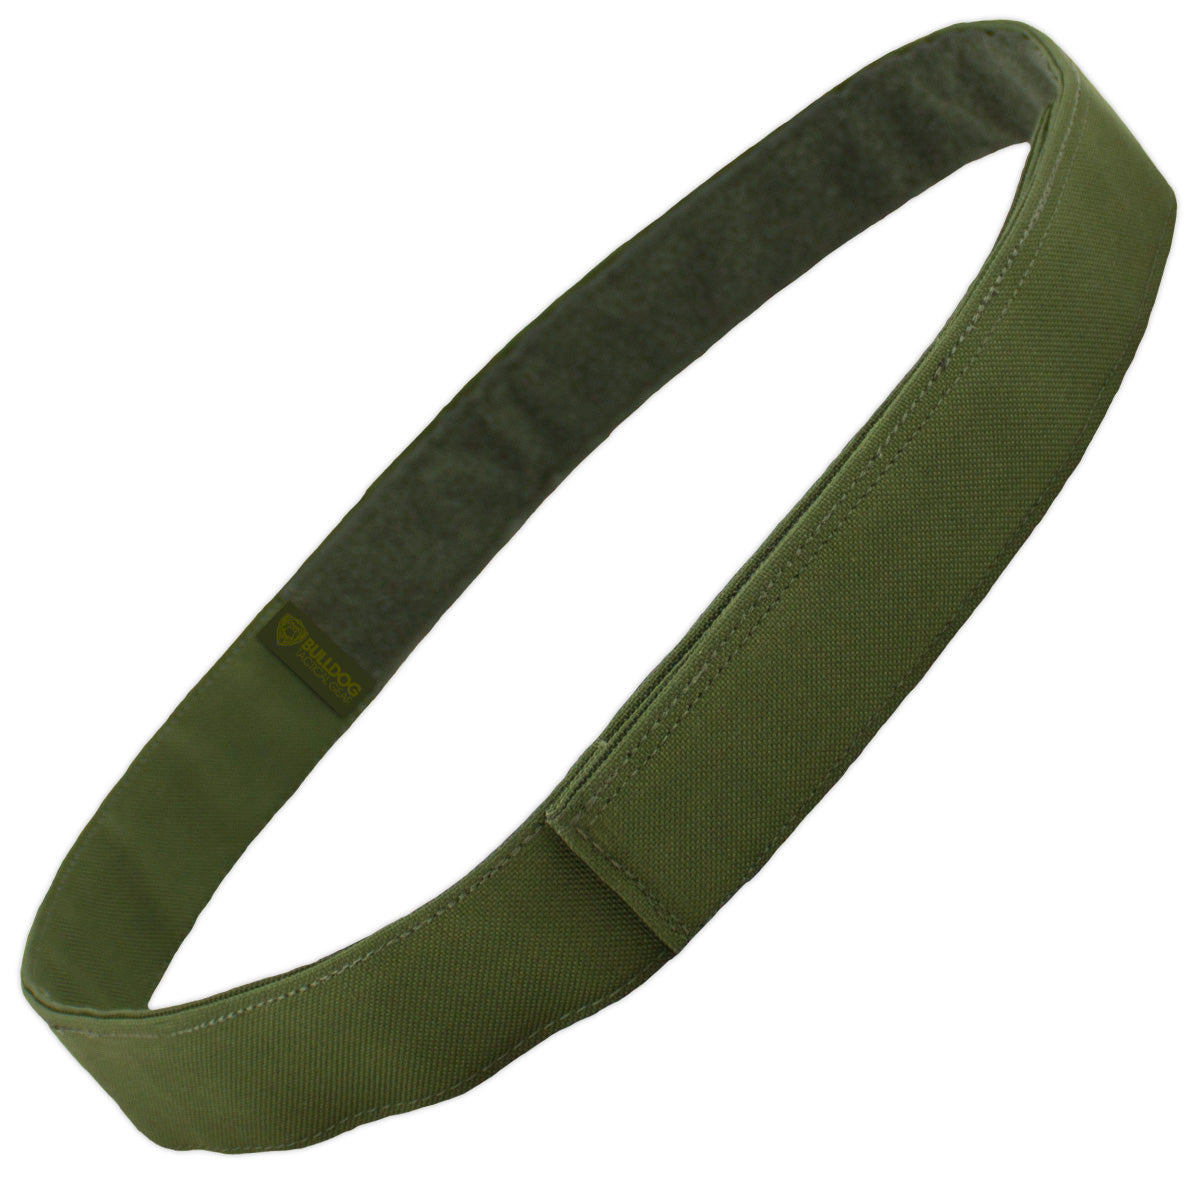 Hook & Loop Tactical Belt 1.5 Inch - Bulldog Tactical Gear